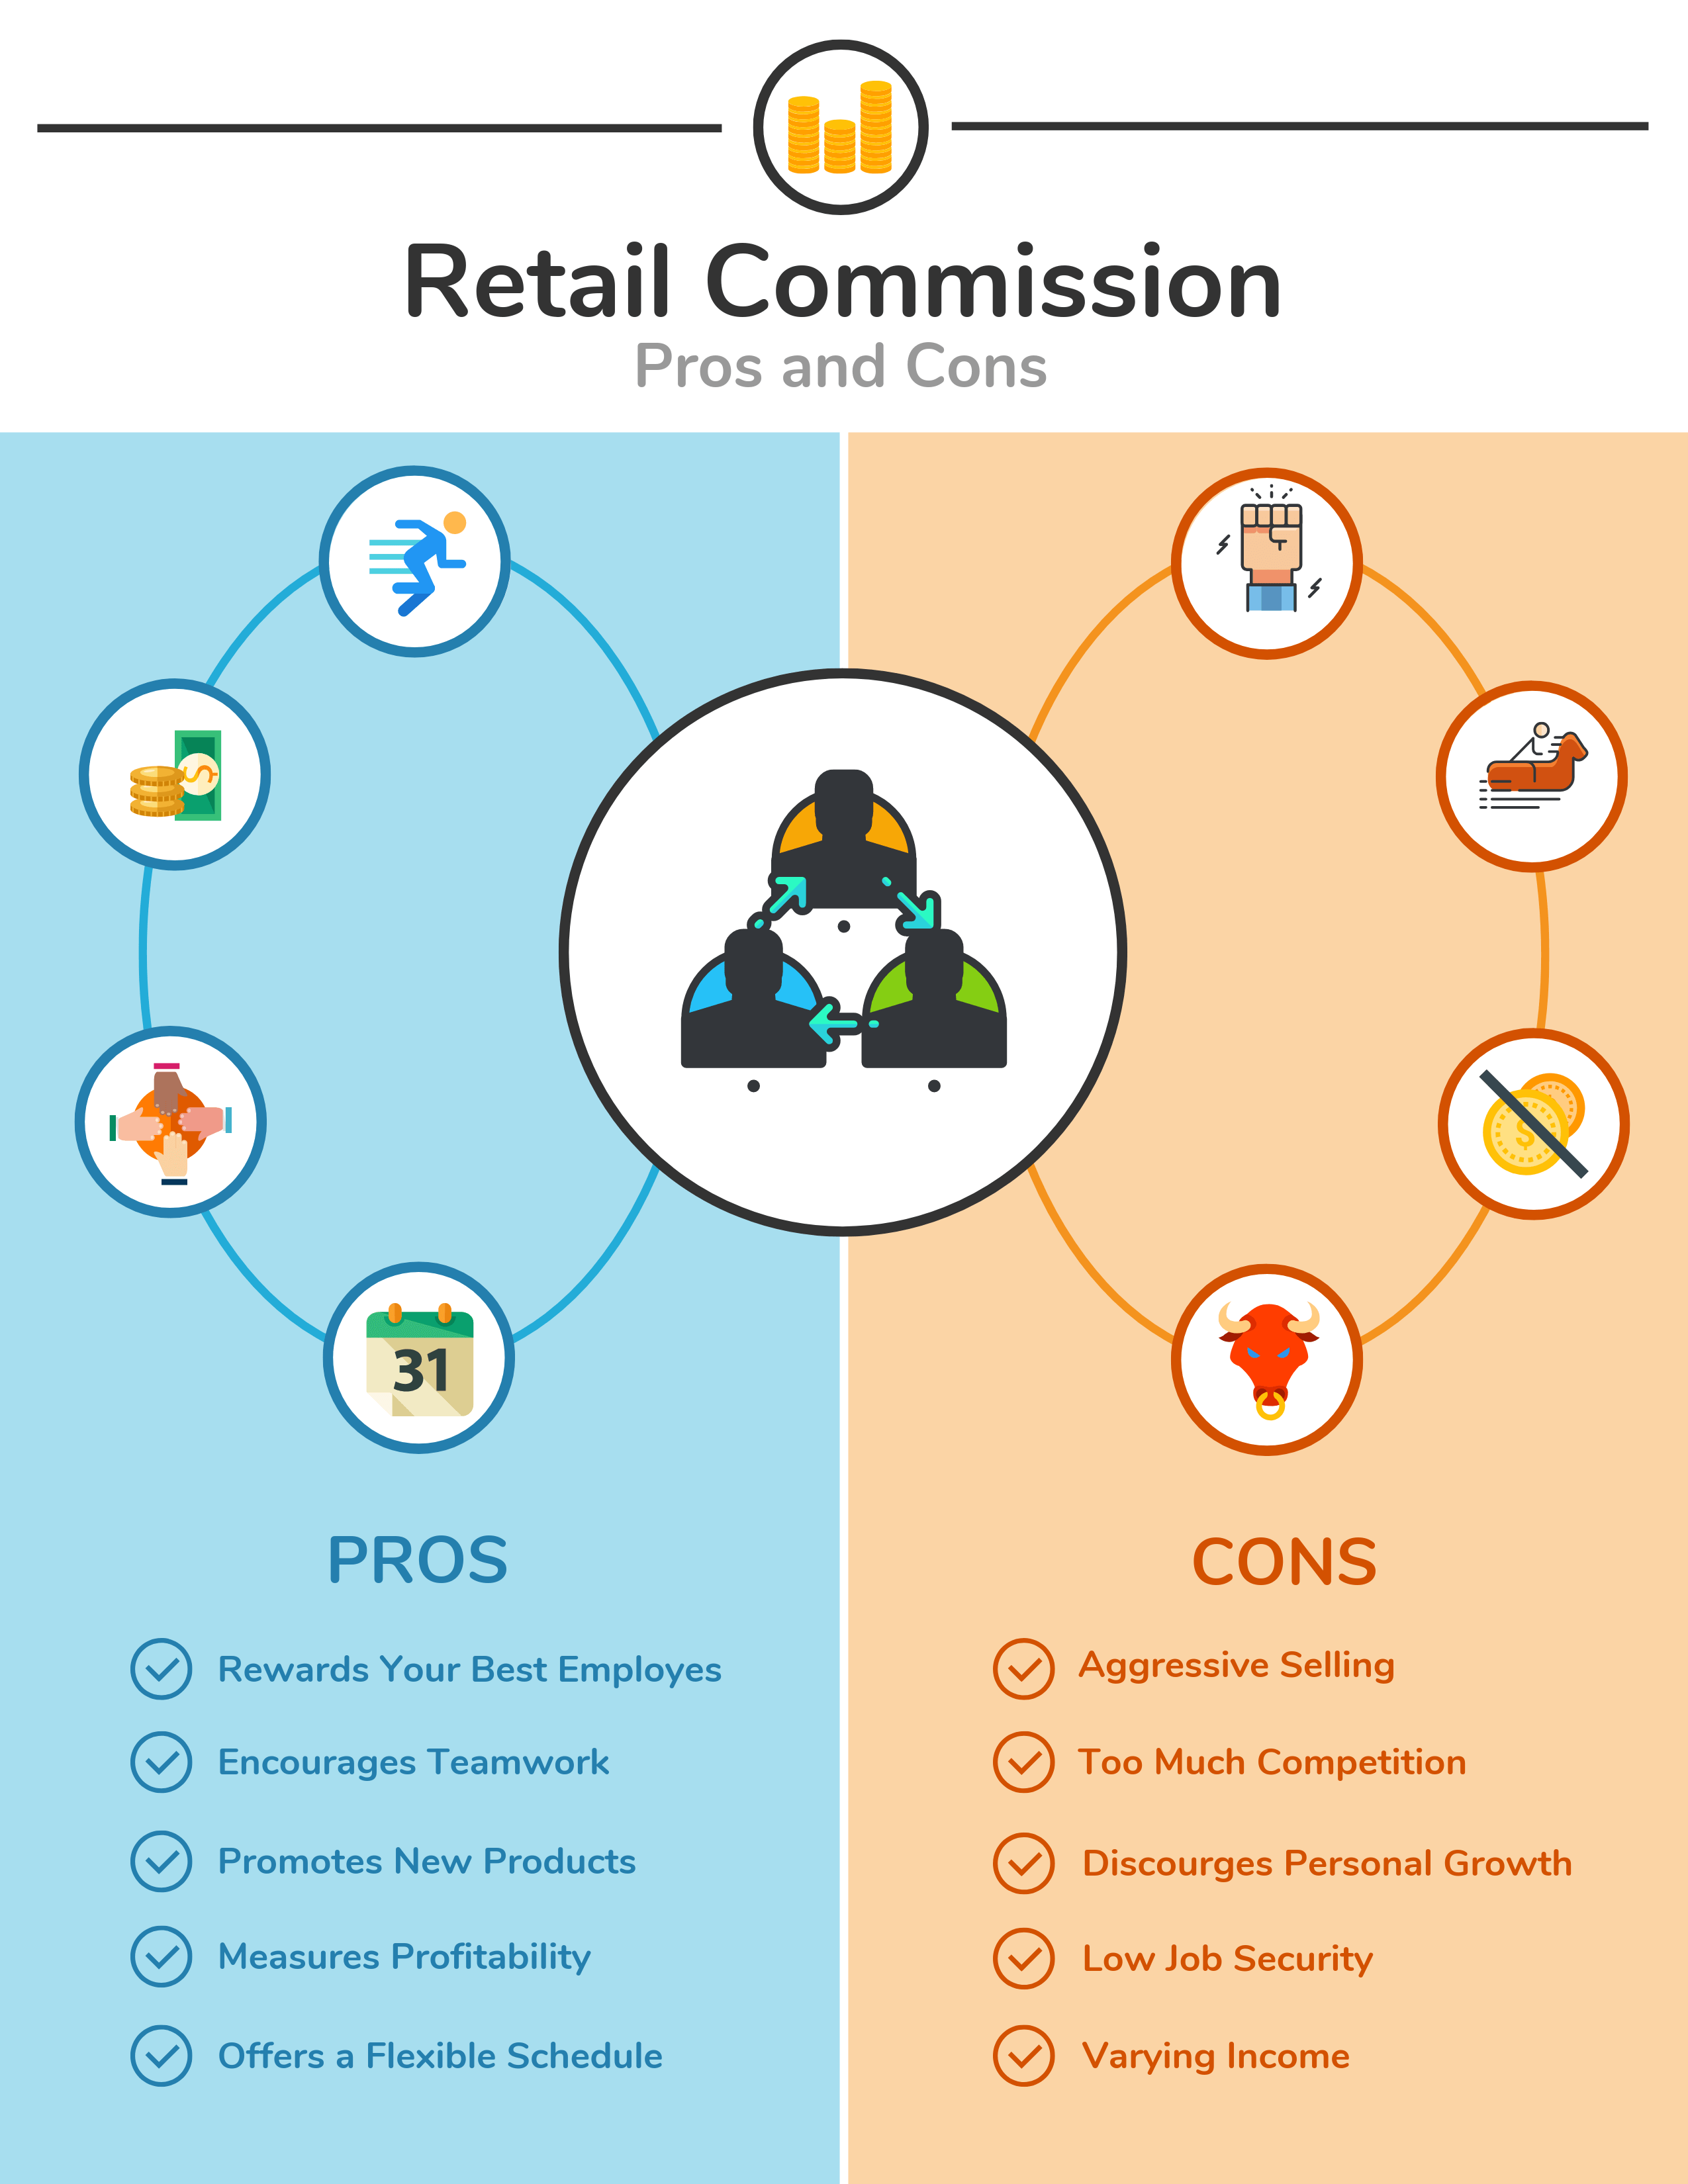 pros and cons of retail commission